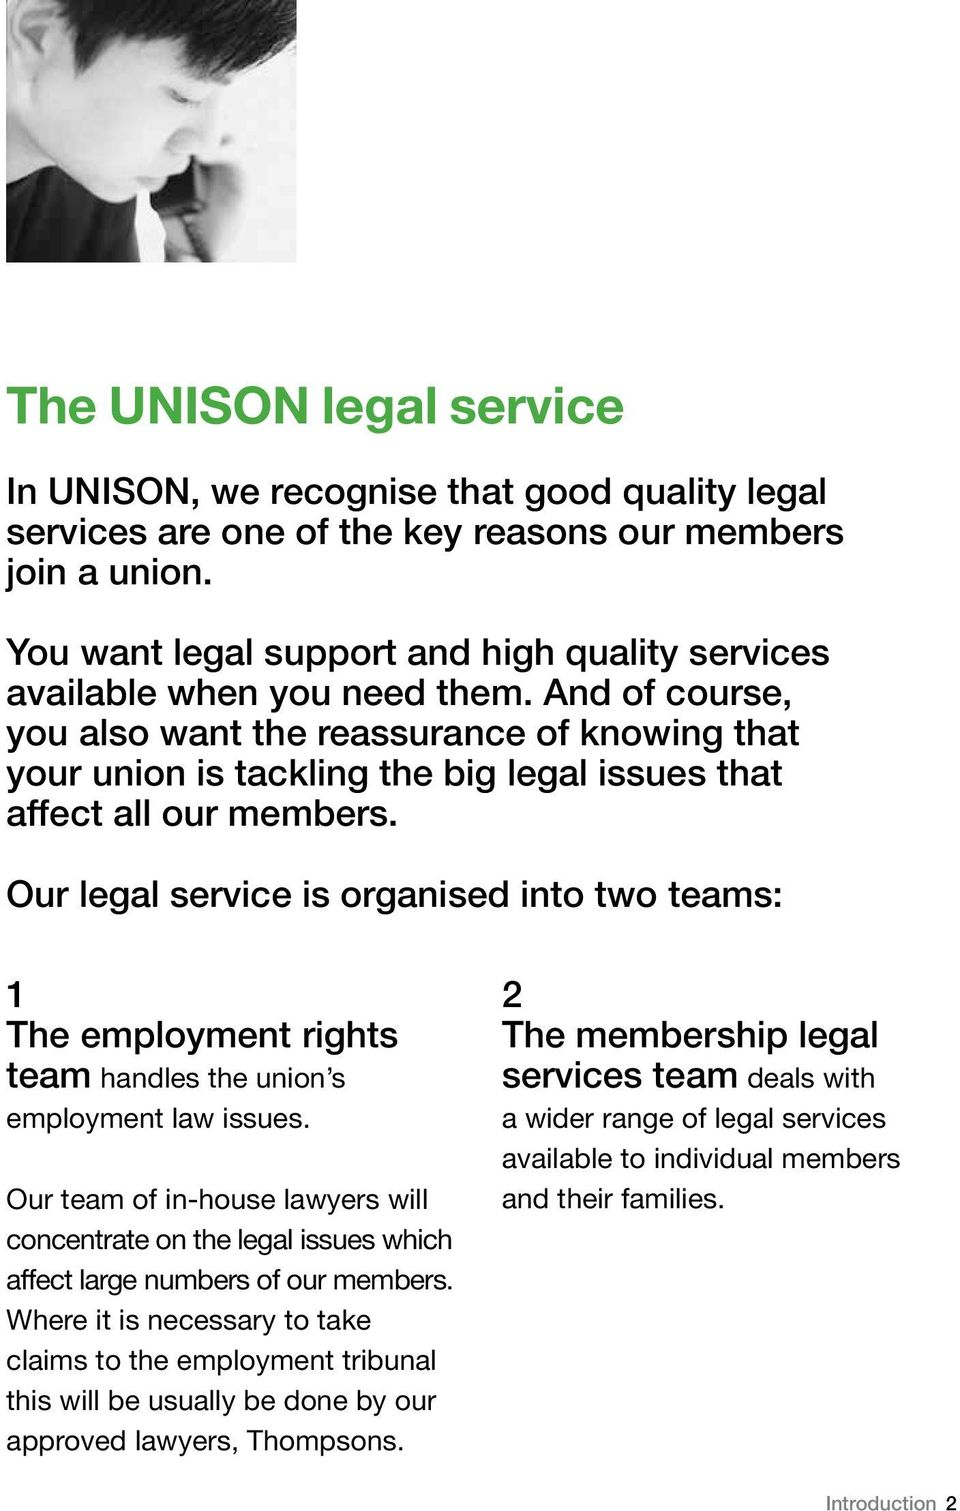 And of course, you also want the reassurance of knowing that your union is tackling the big legal issues that affect all our members.